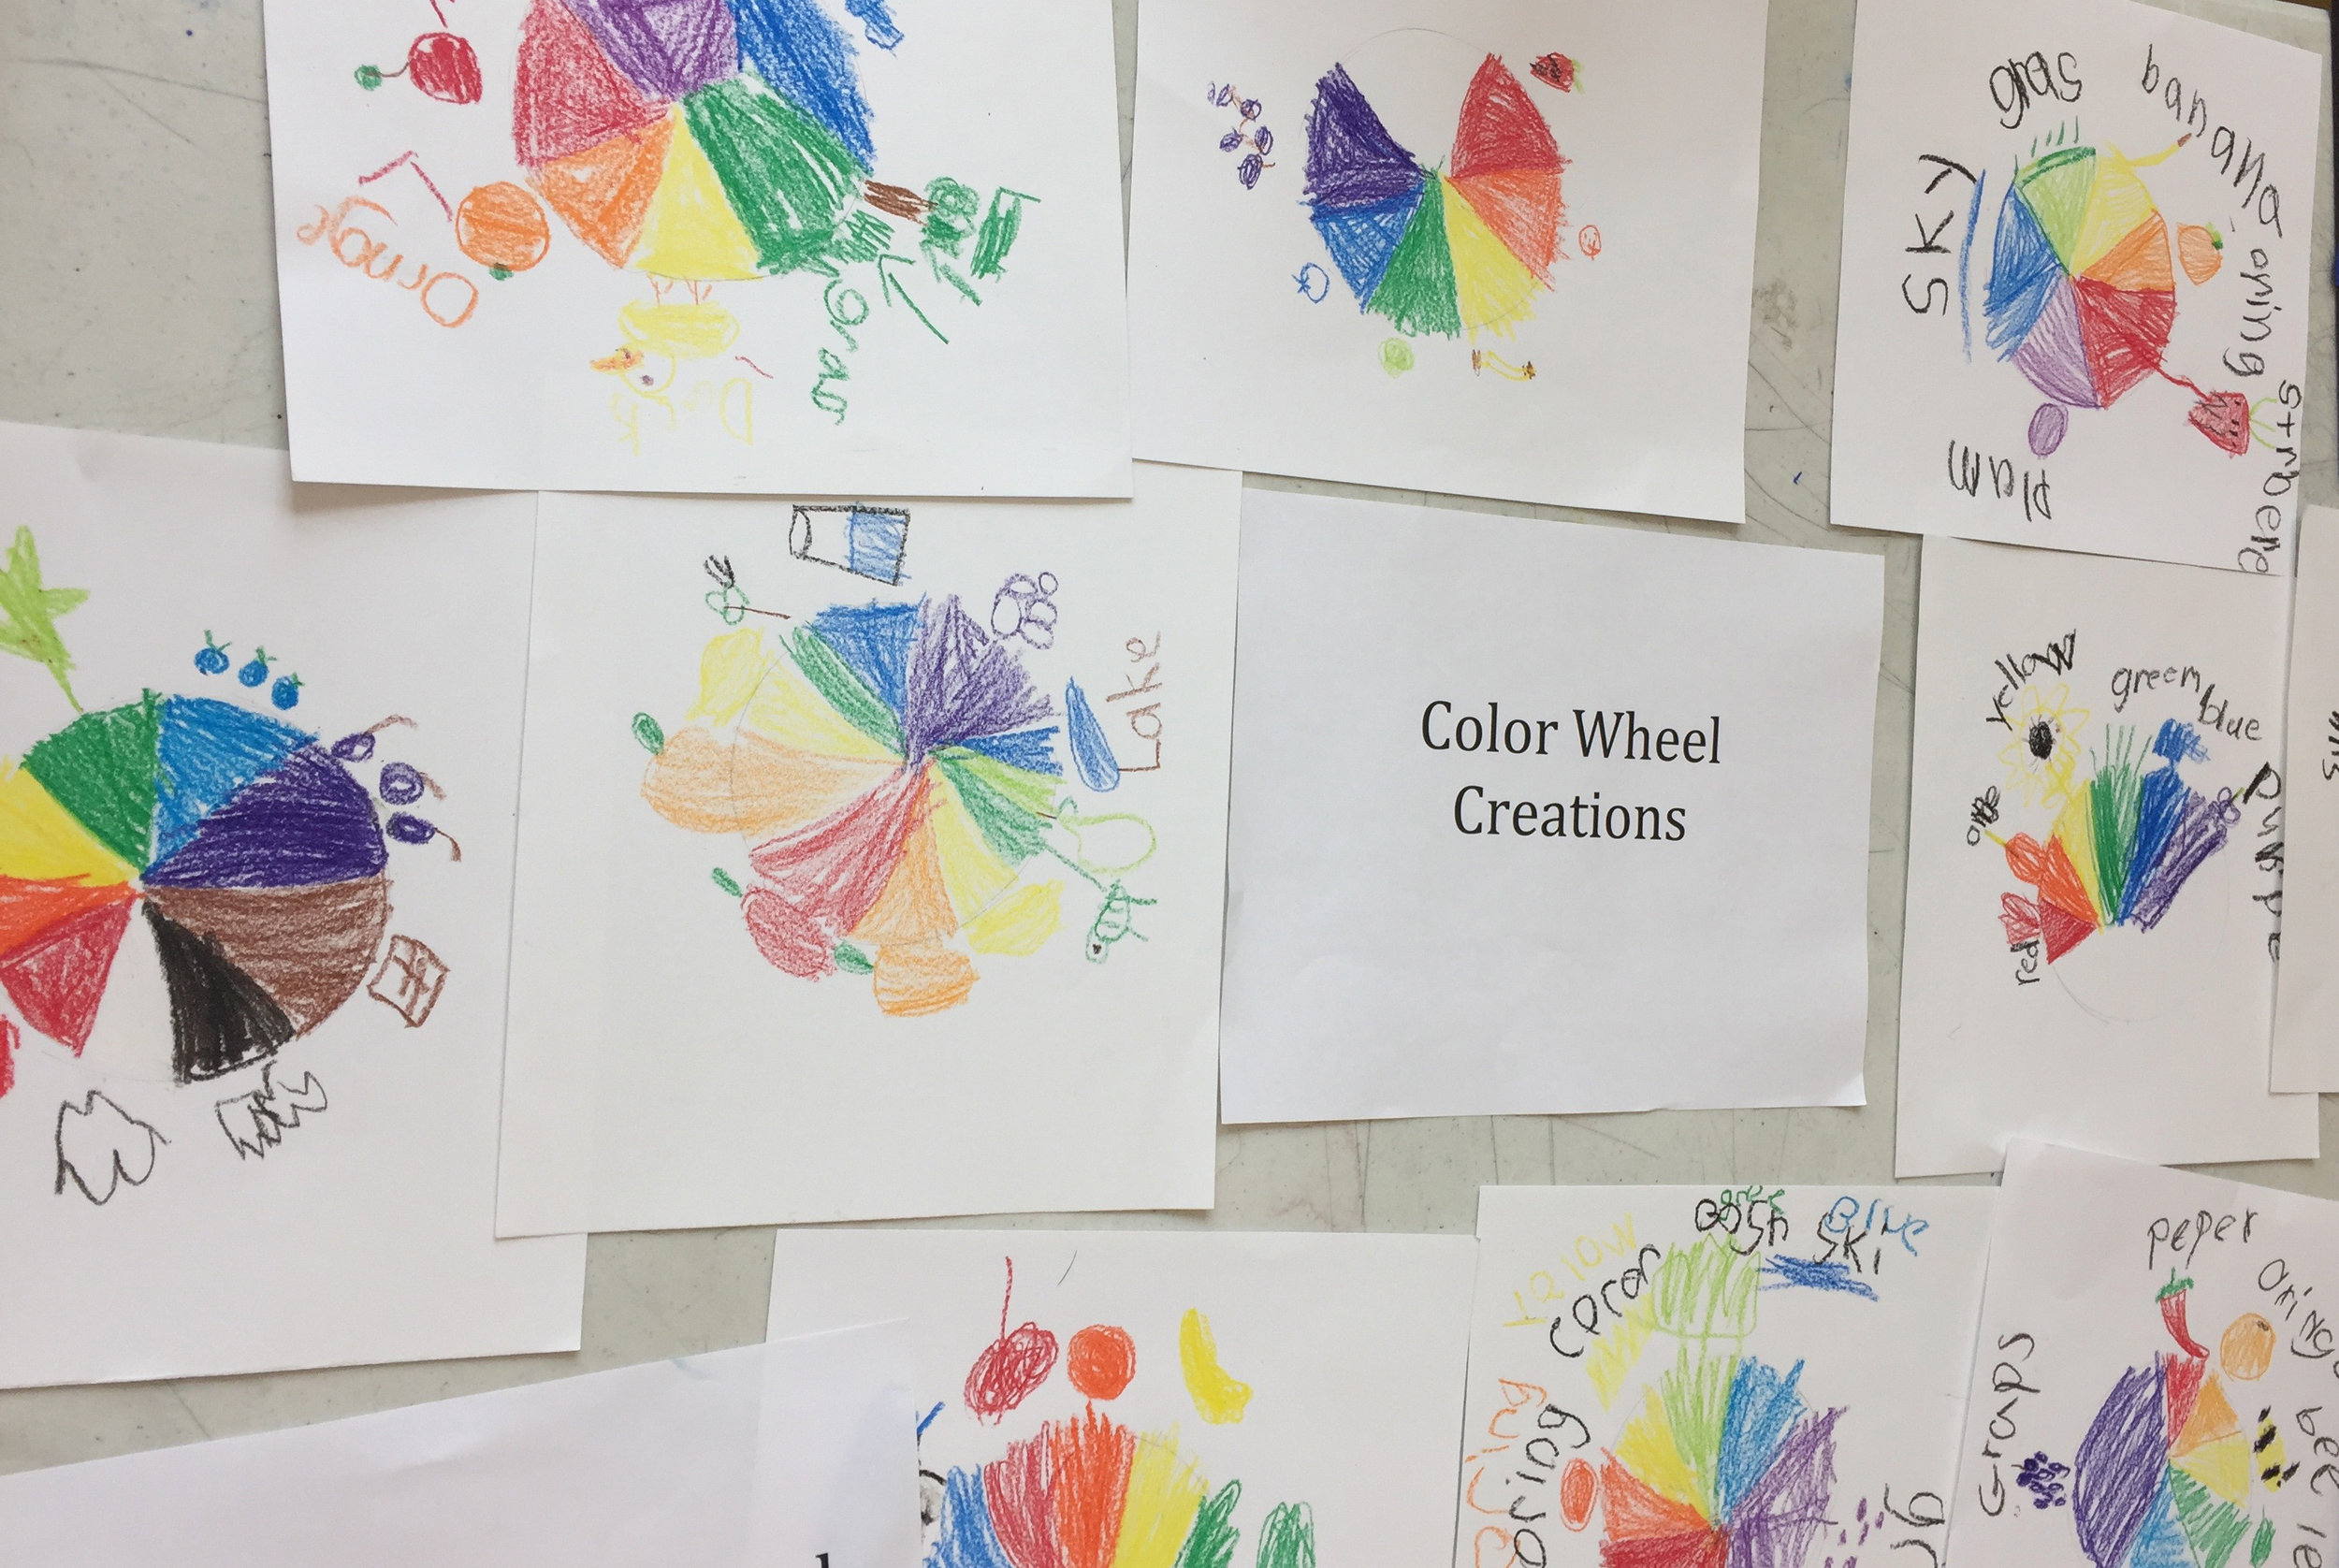 Color Wheel Exploration.jpg